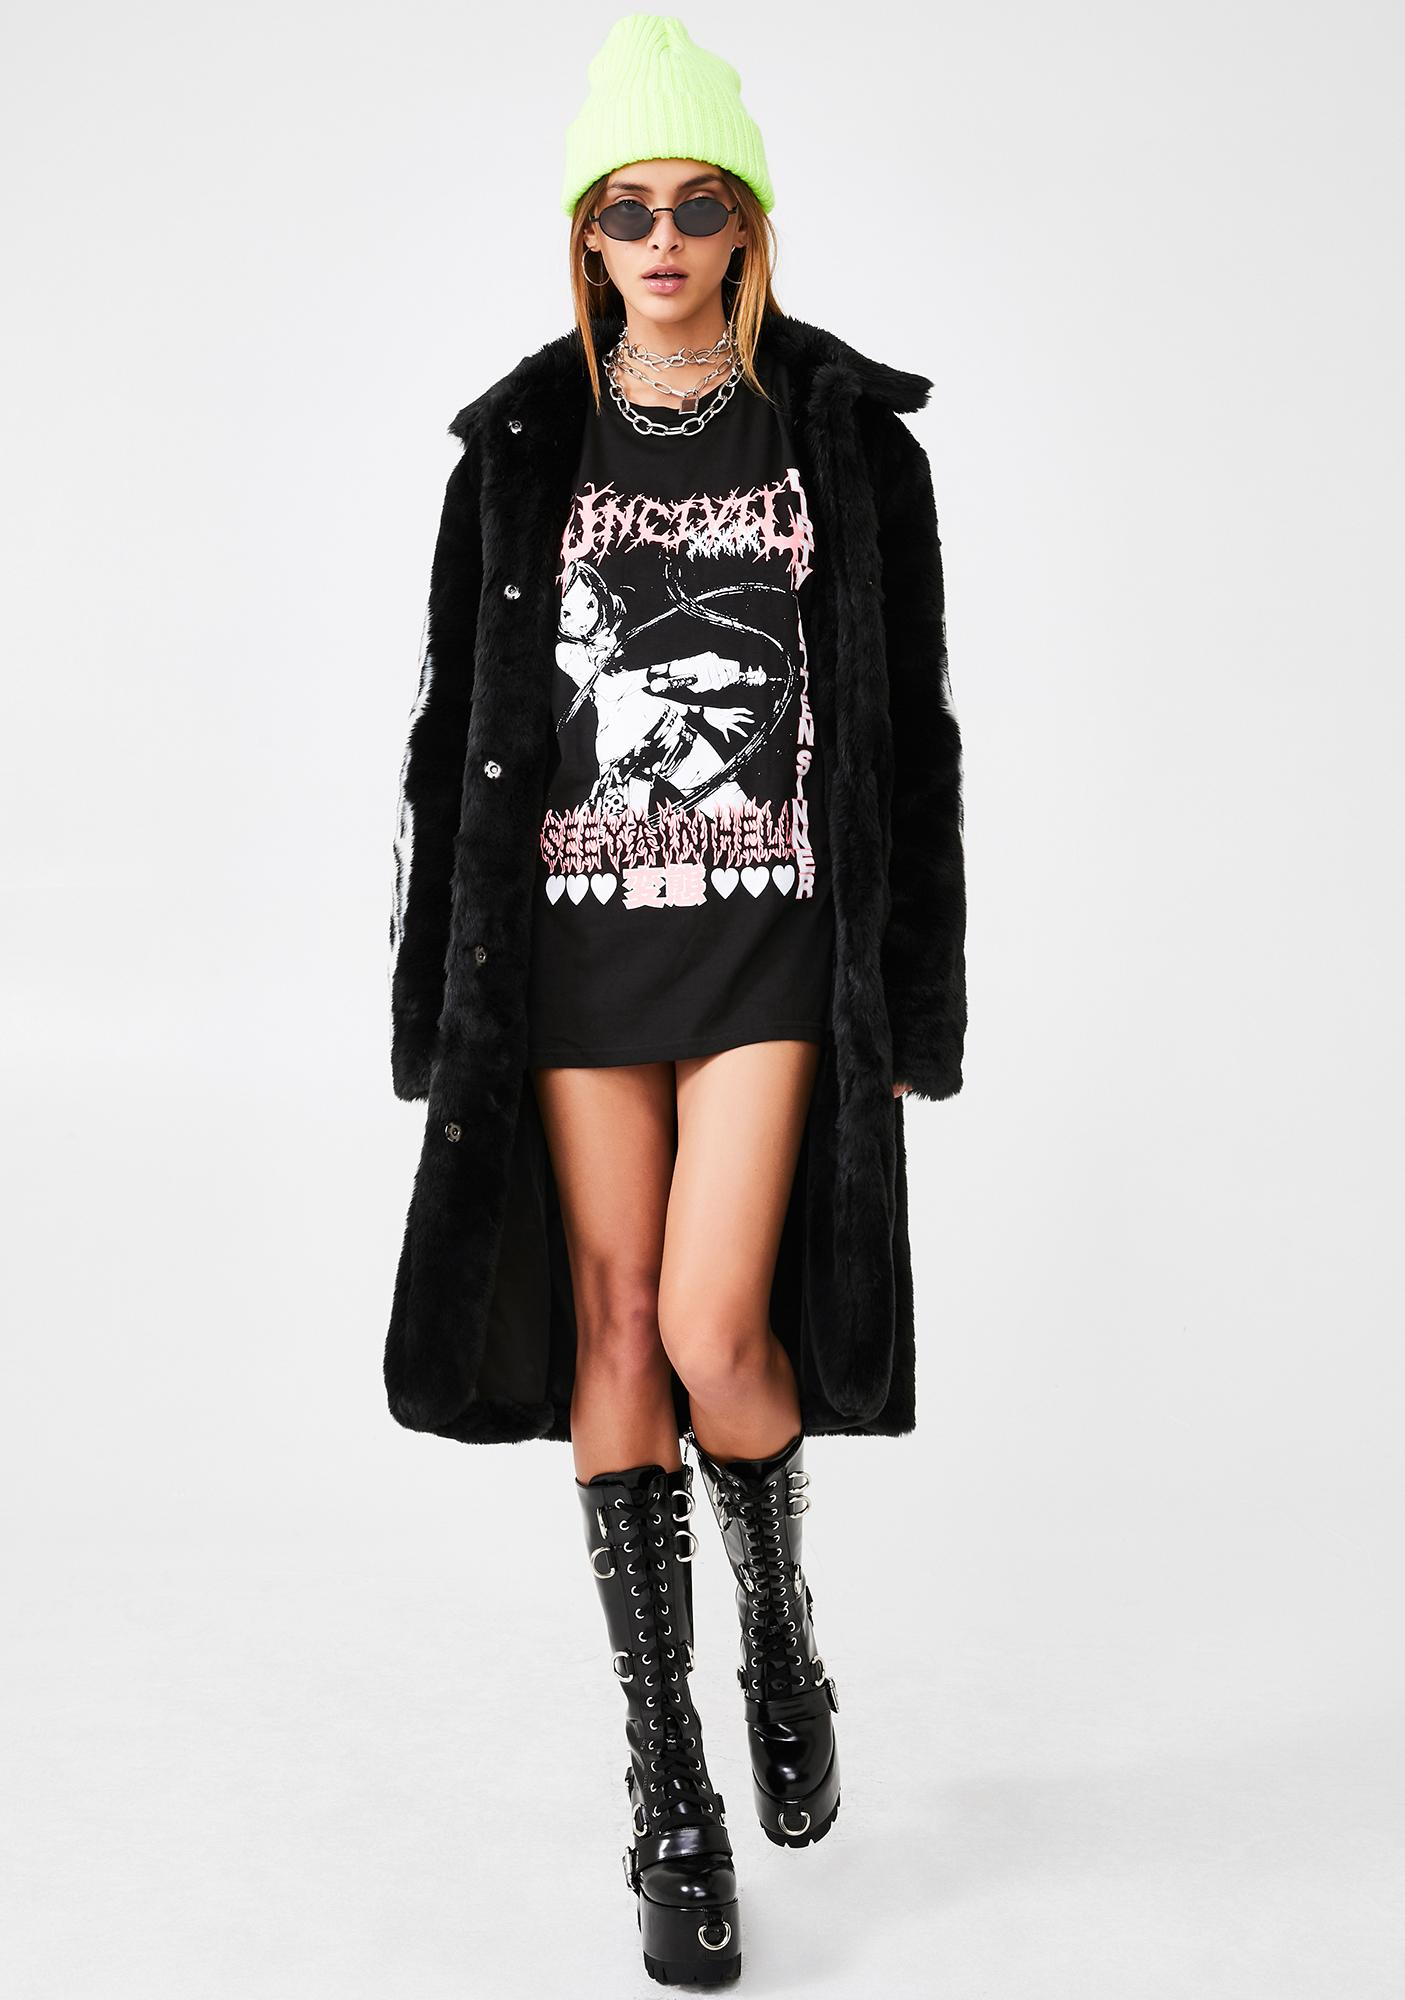 UNCIVIL XXX Dirty Rotten Sinner Graphic Tee